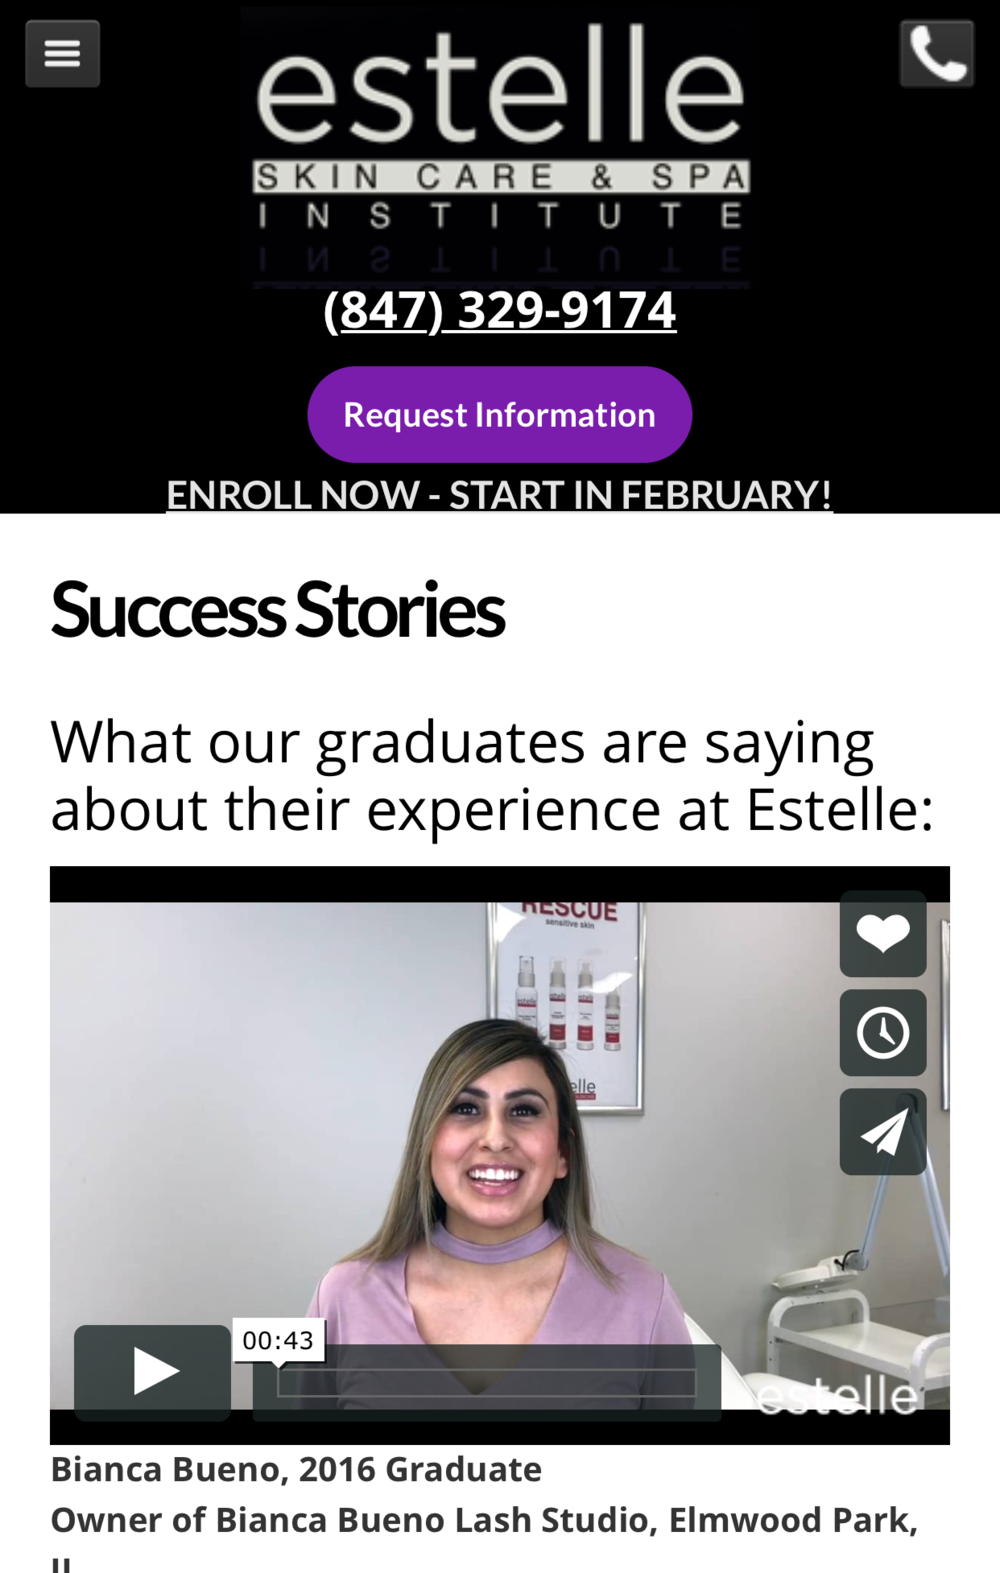 featured on Estelle Skin Care & Spa Institute success stories!